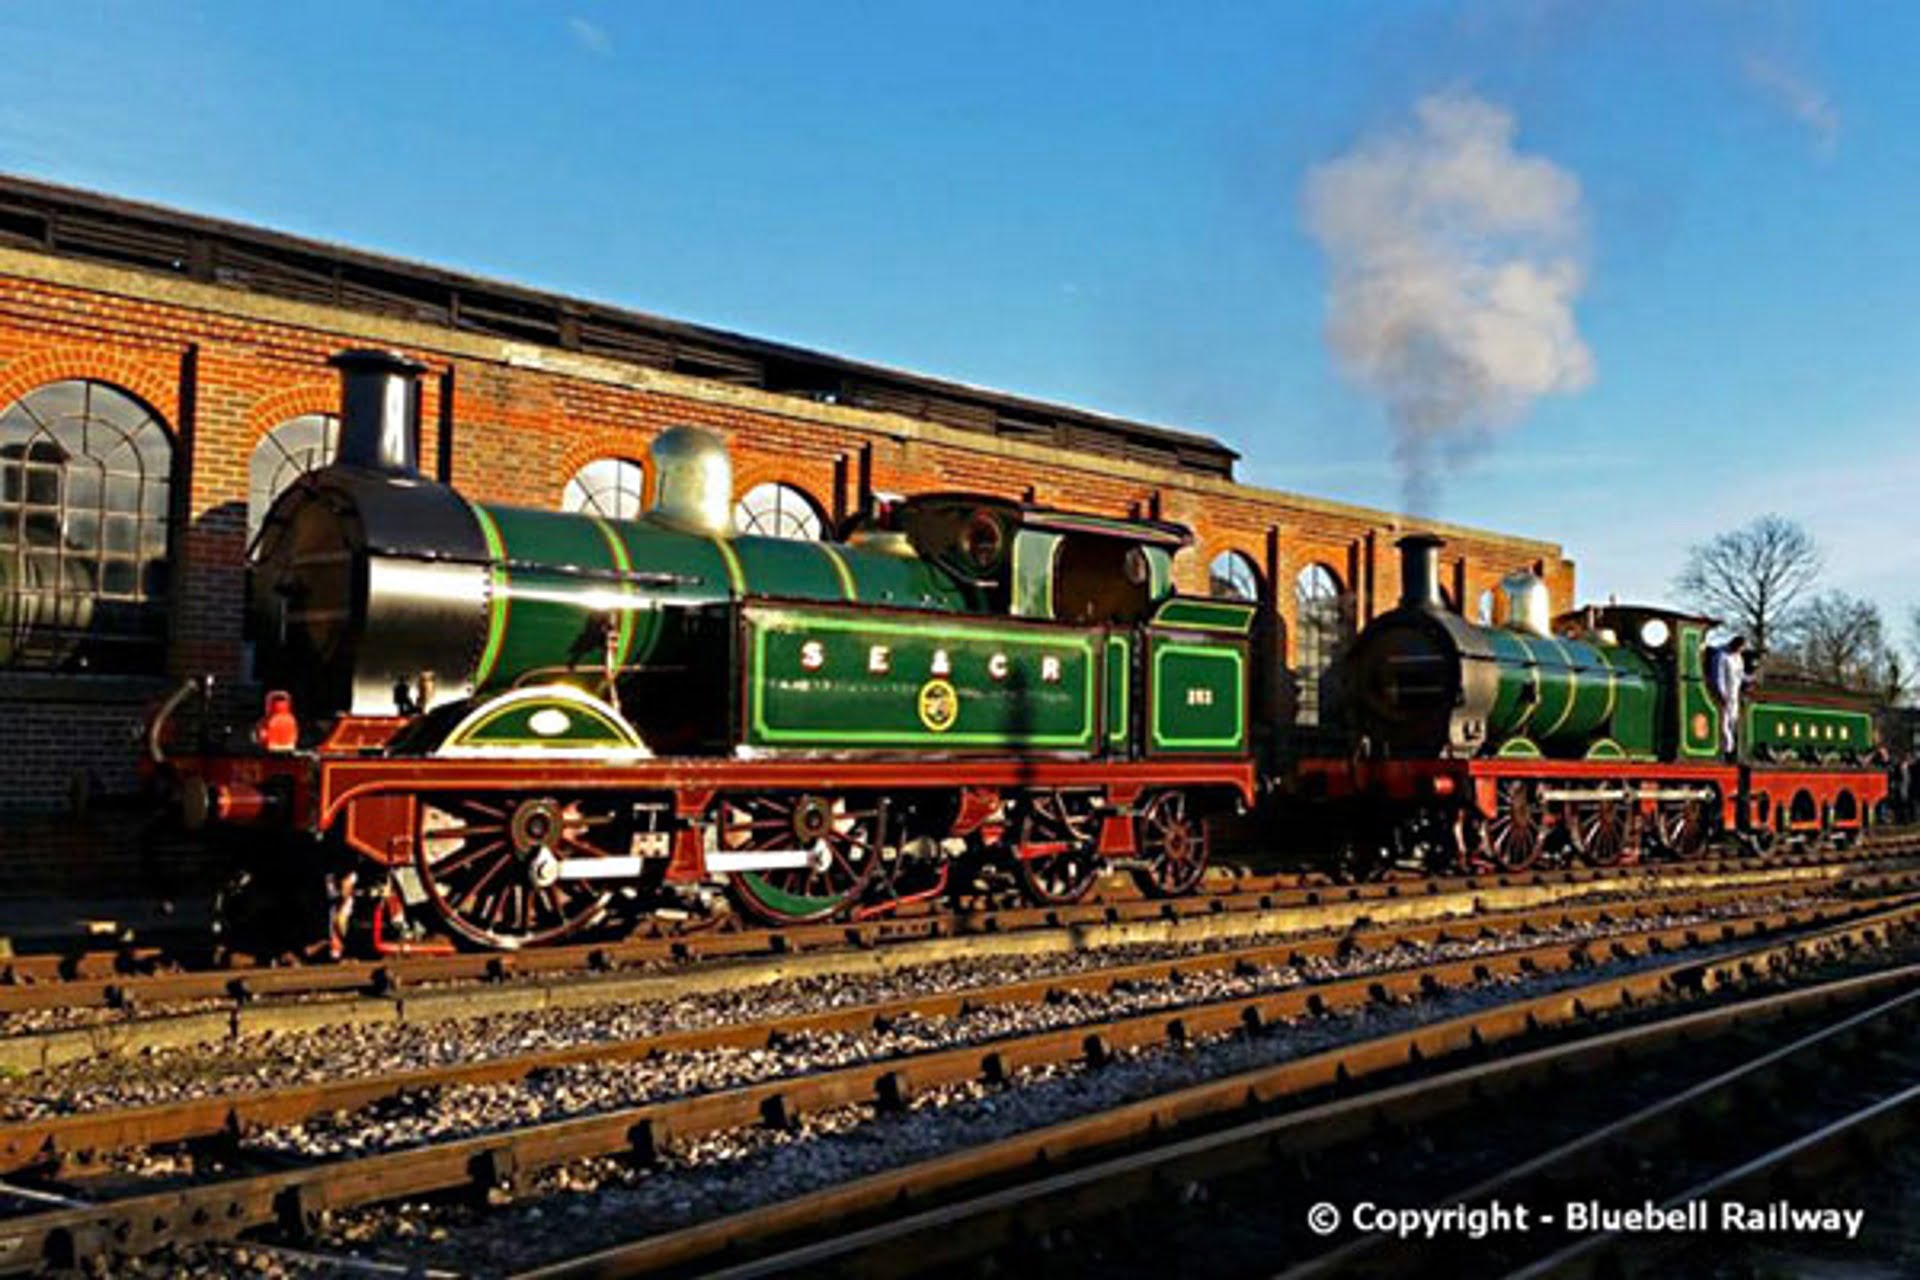 H Class no. 263 and O1 Class no. 65 Credit Martin Lawrence and Bluebell Railway website